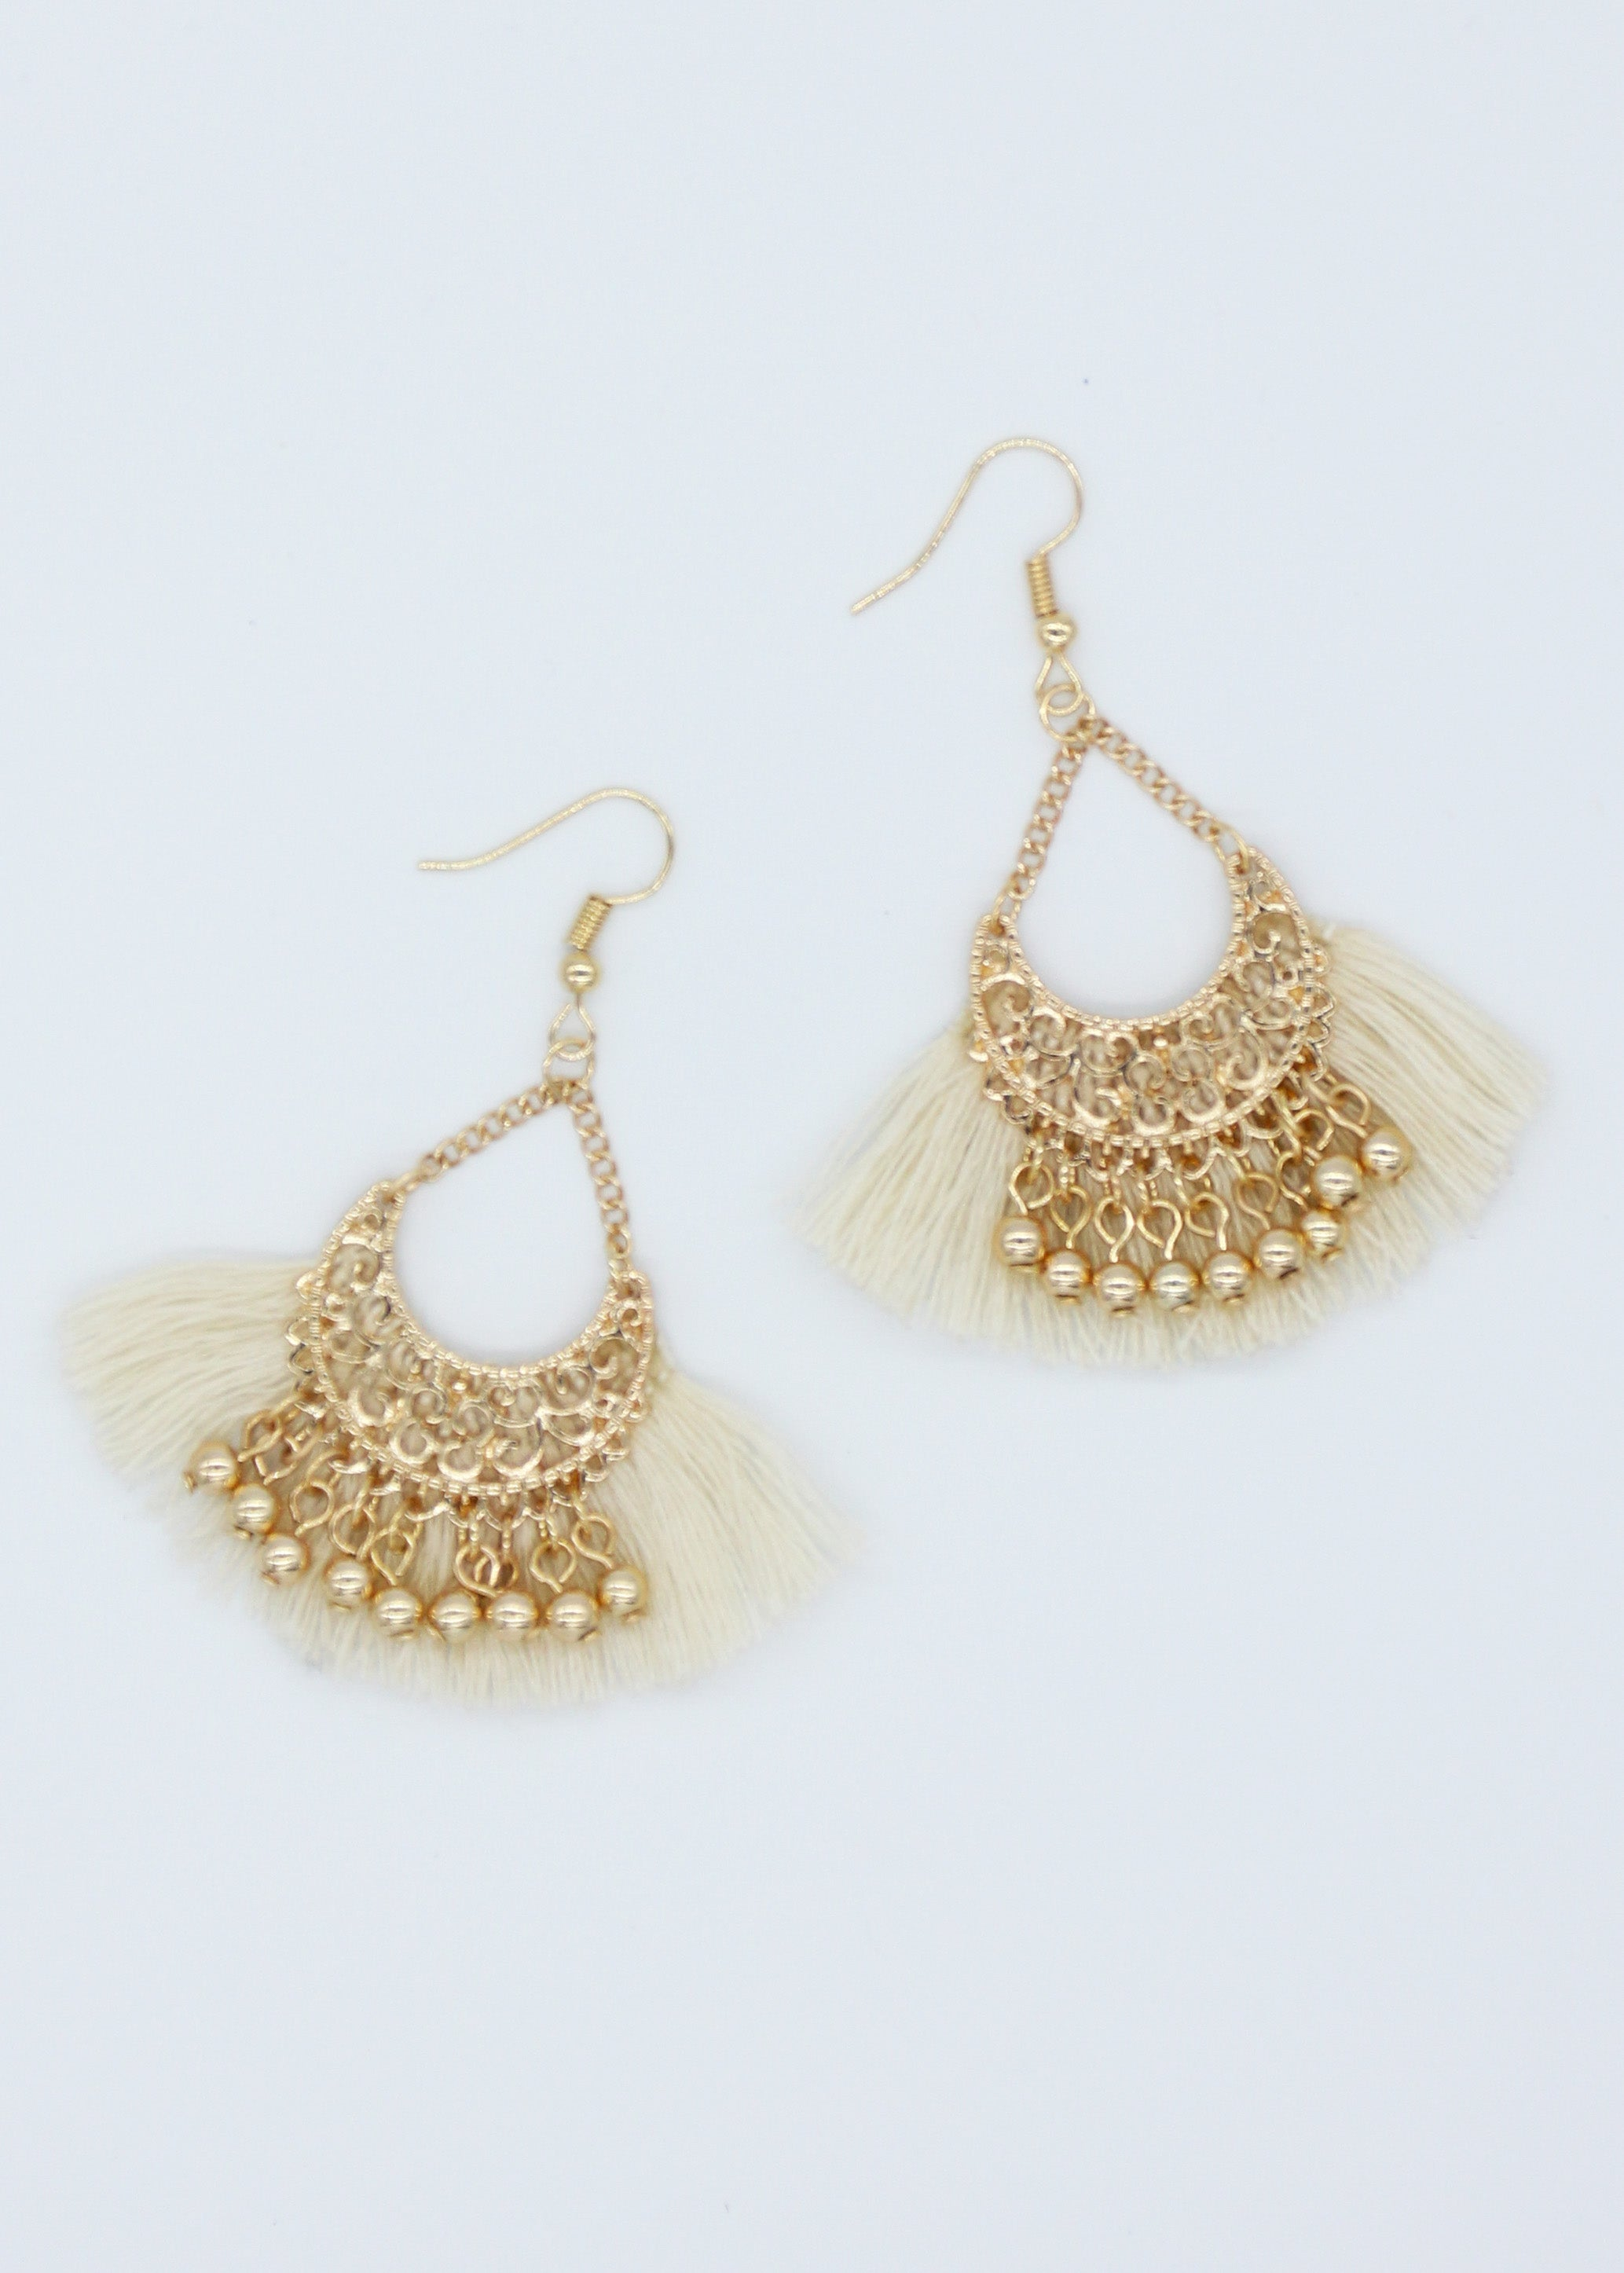 Indiana Earrings - Coconut